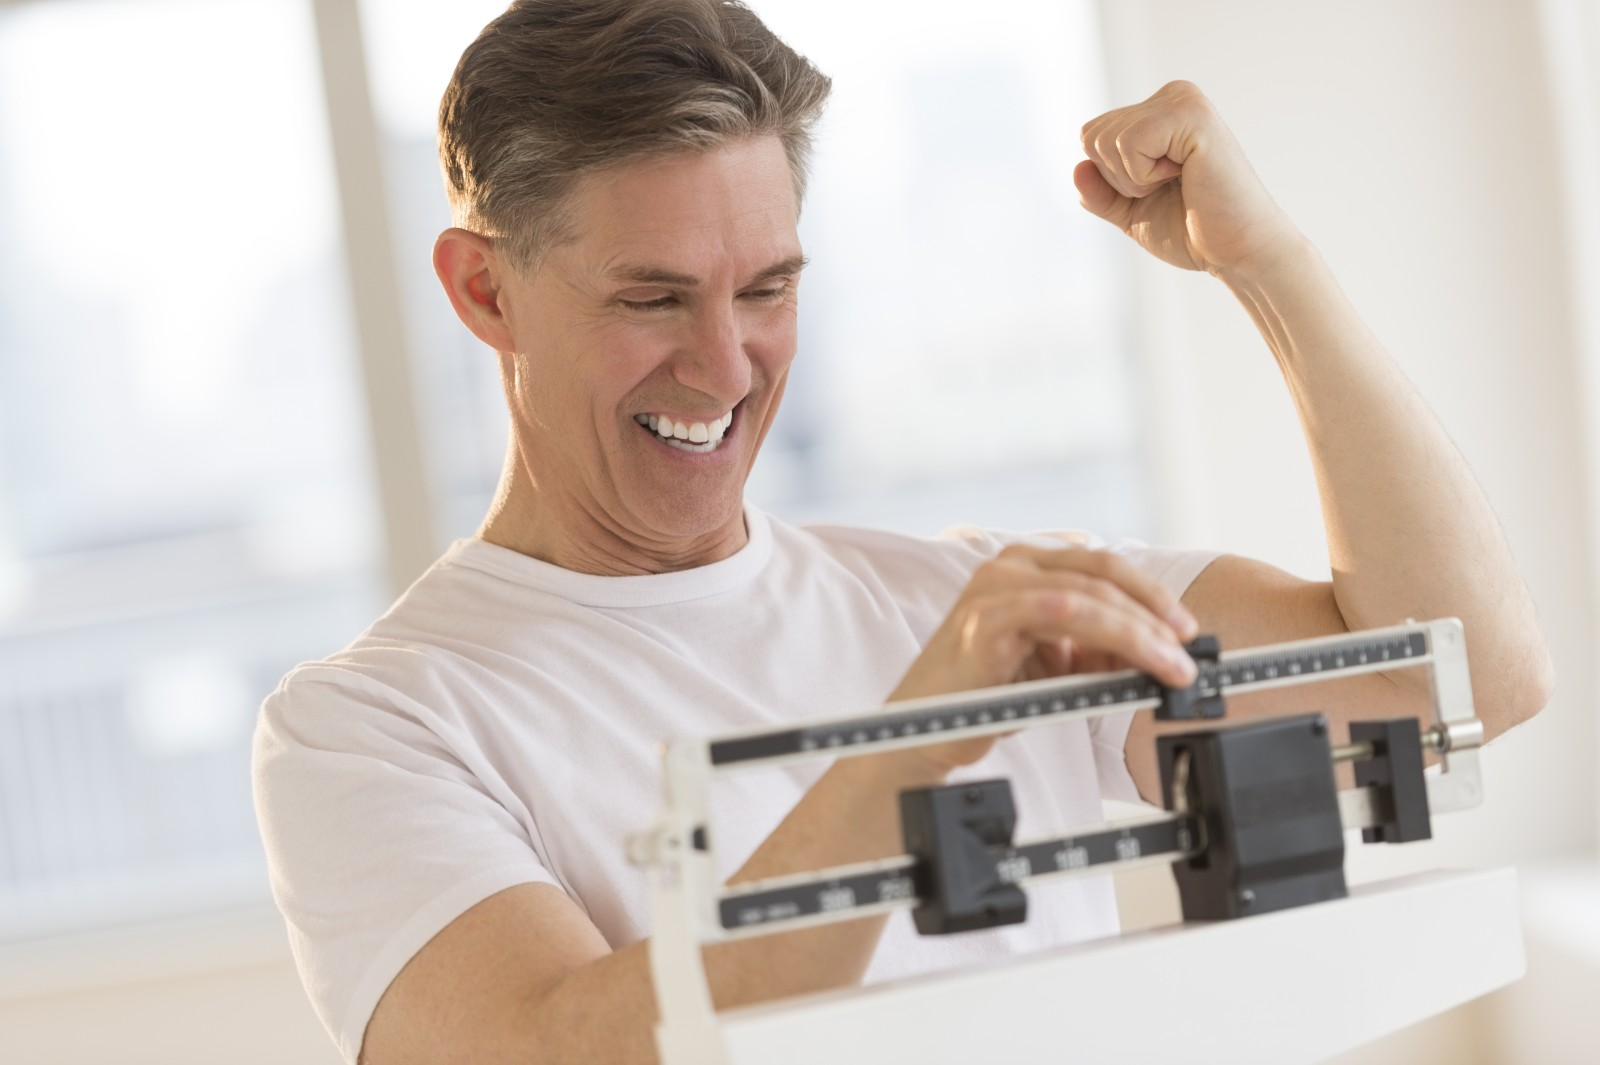 How to Market Weight Loss Programs to Men